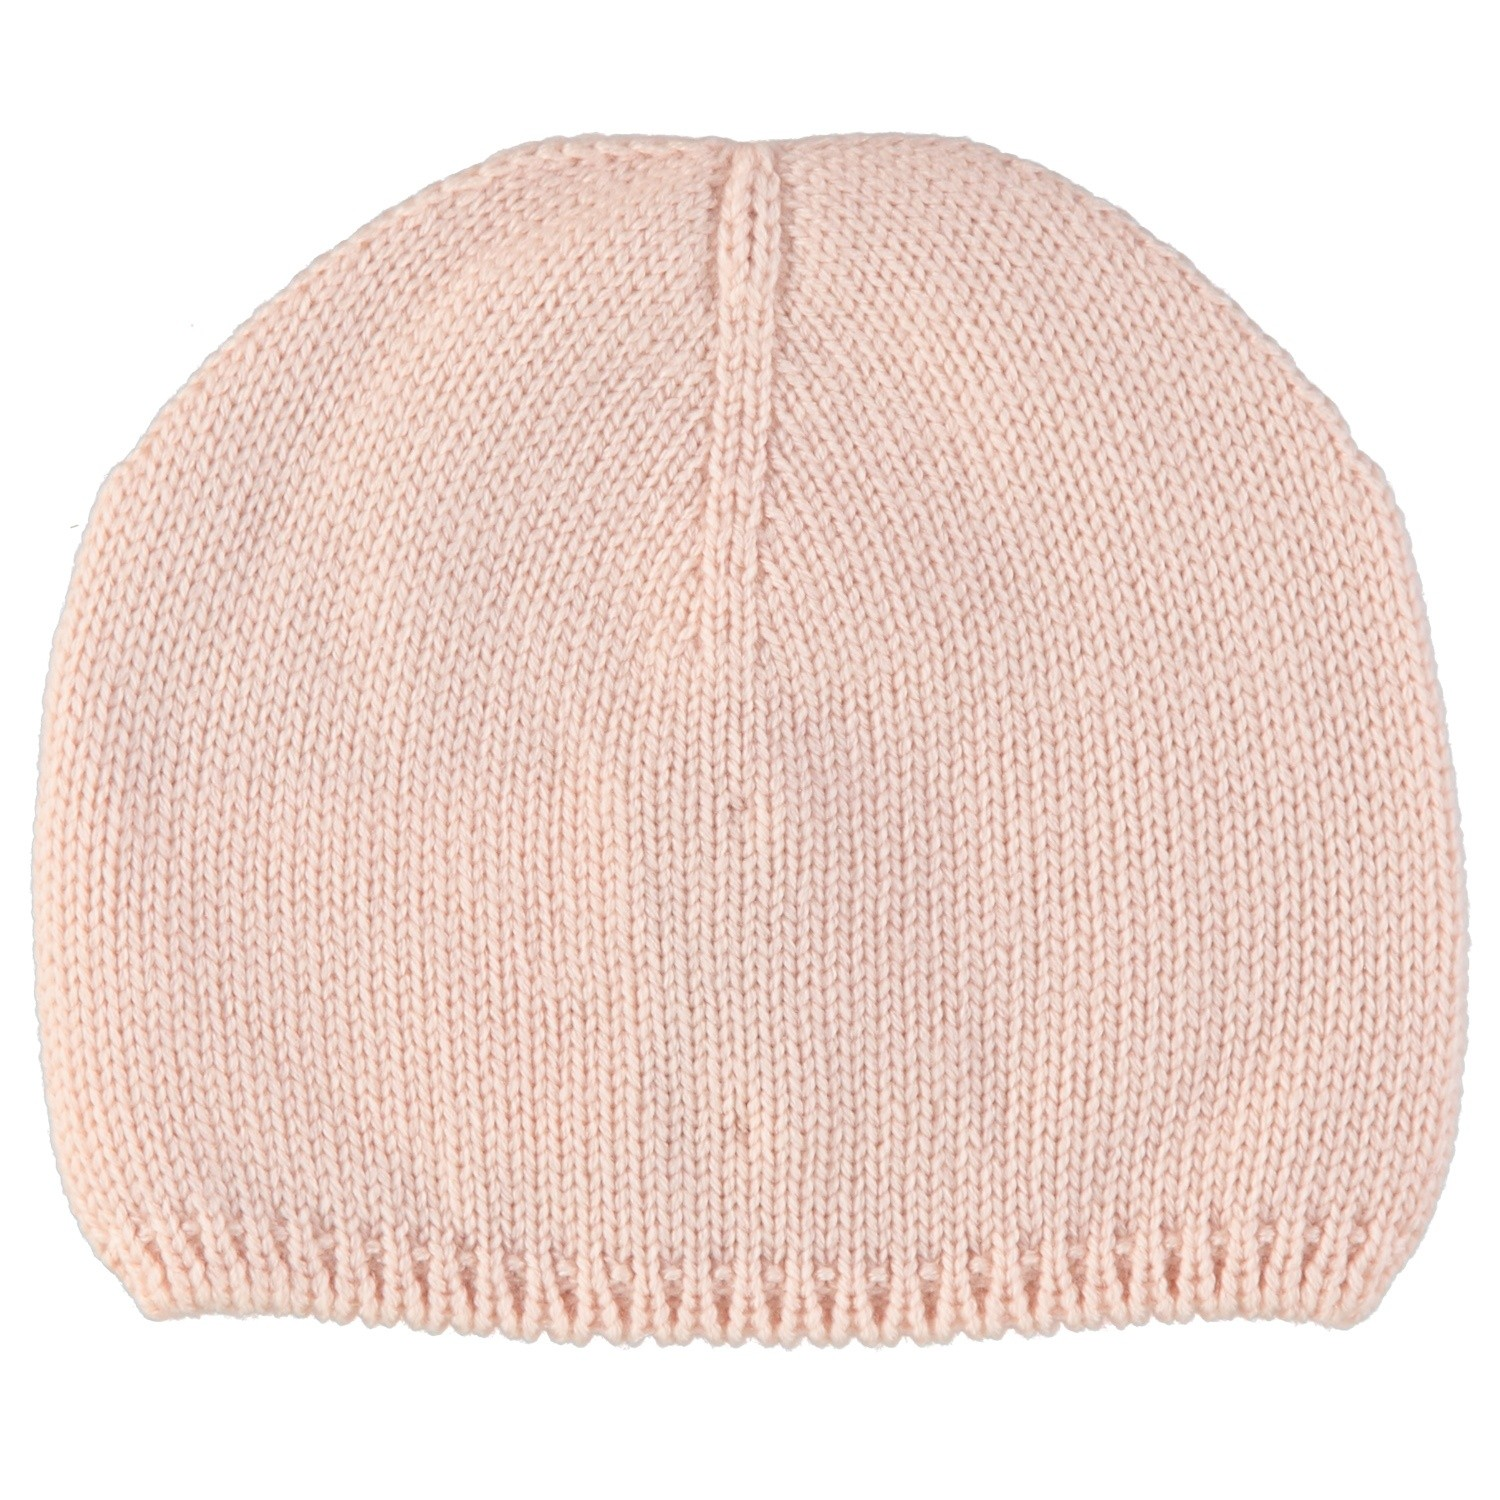 Picture of Moncler 9921305 baby hat light pink